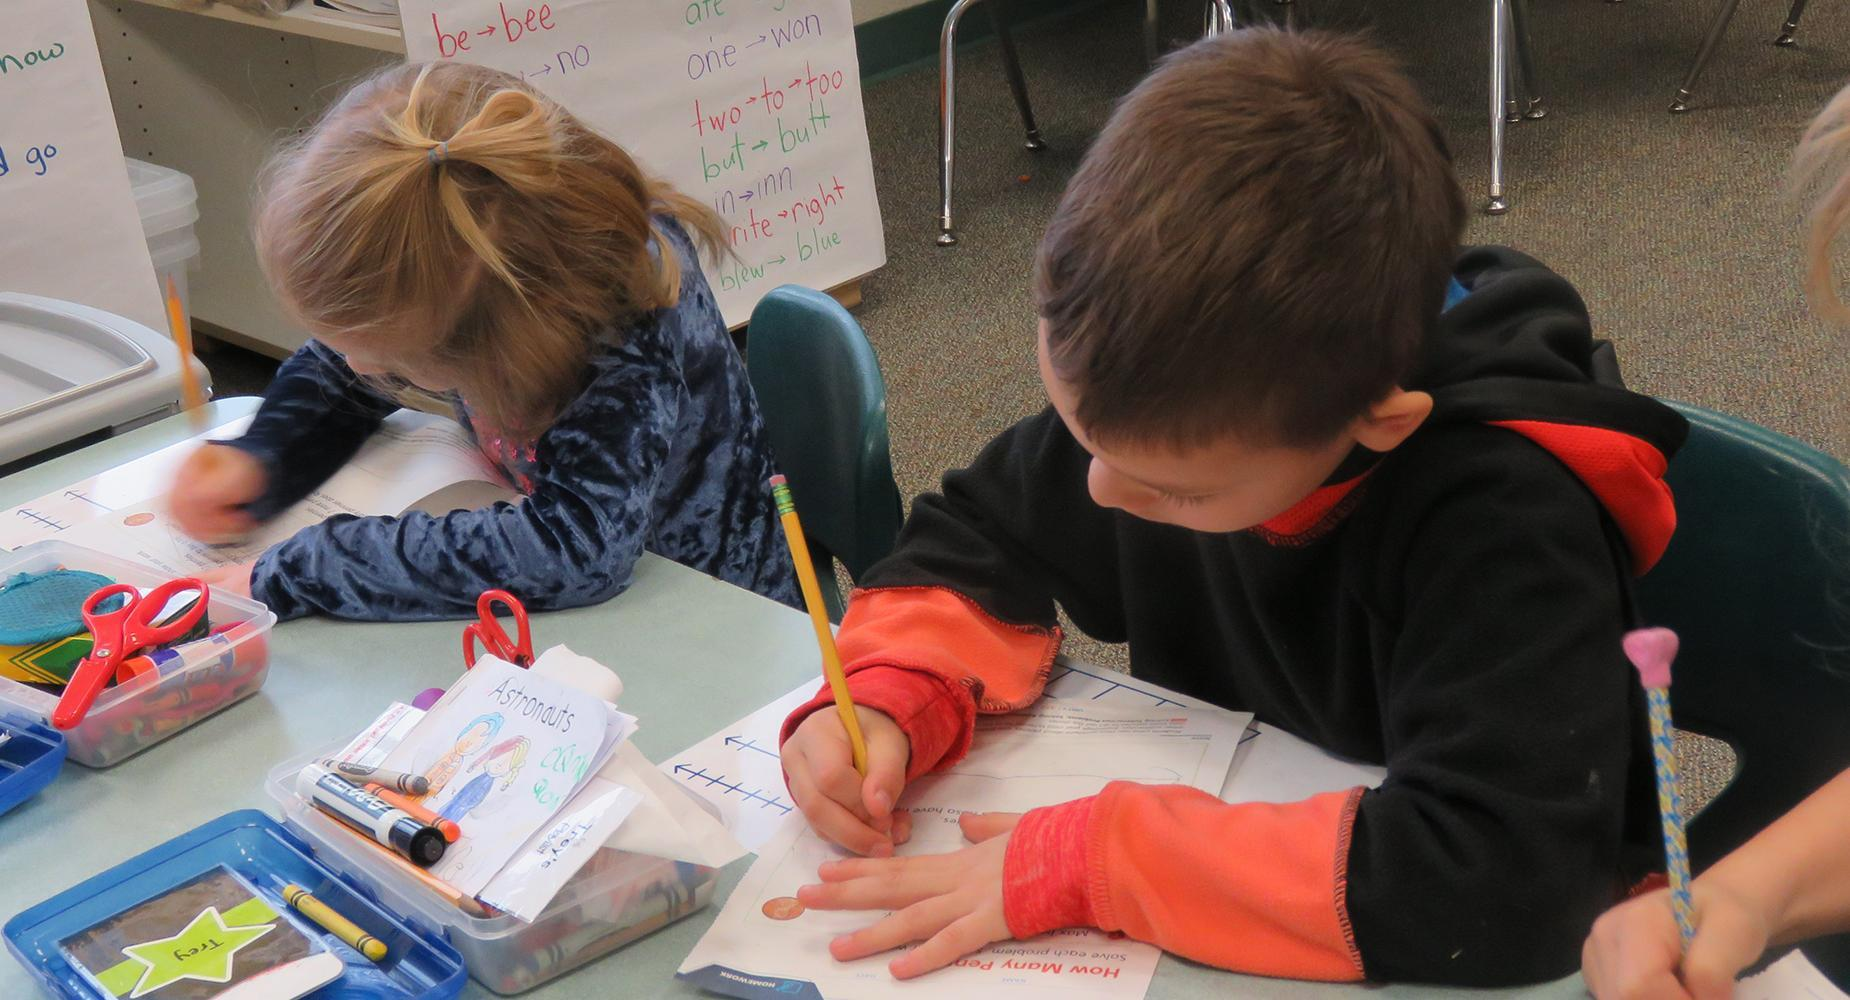 Two children work on a math worksheet with pencils and papers.